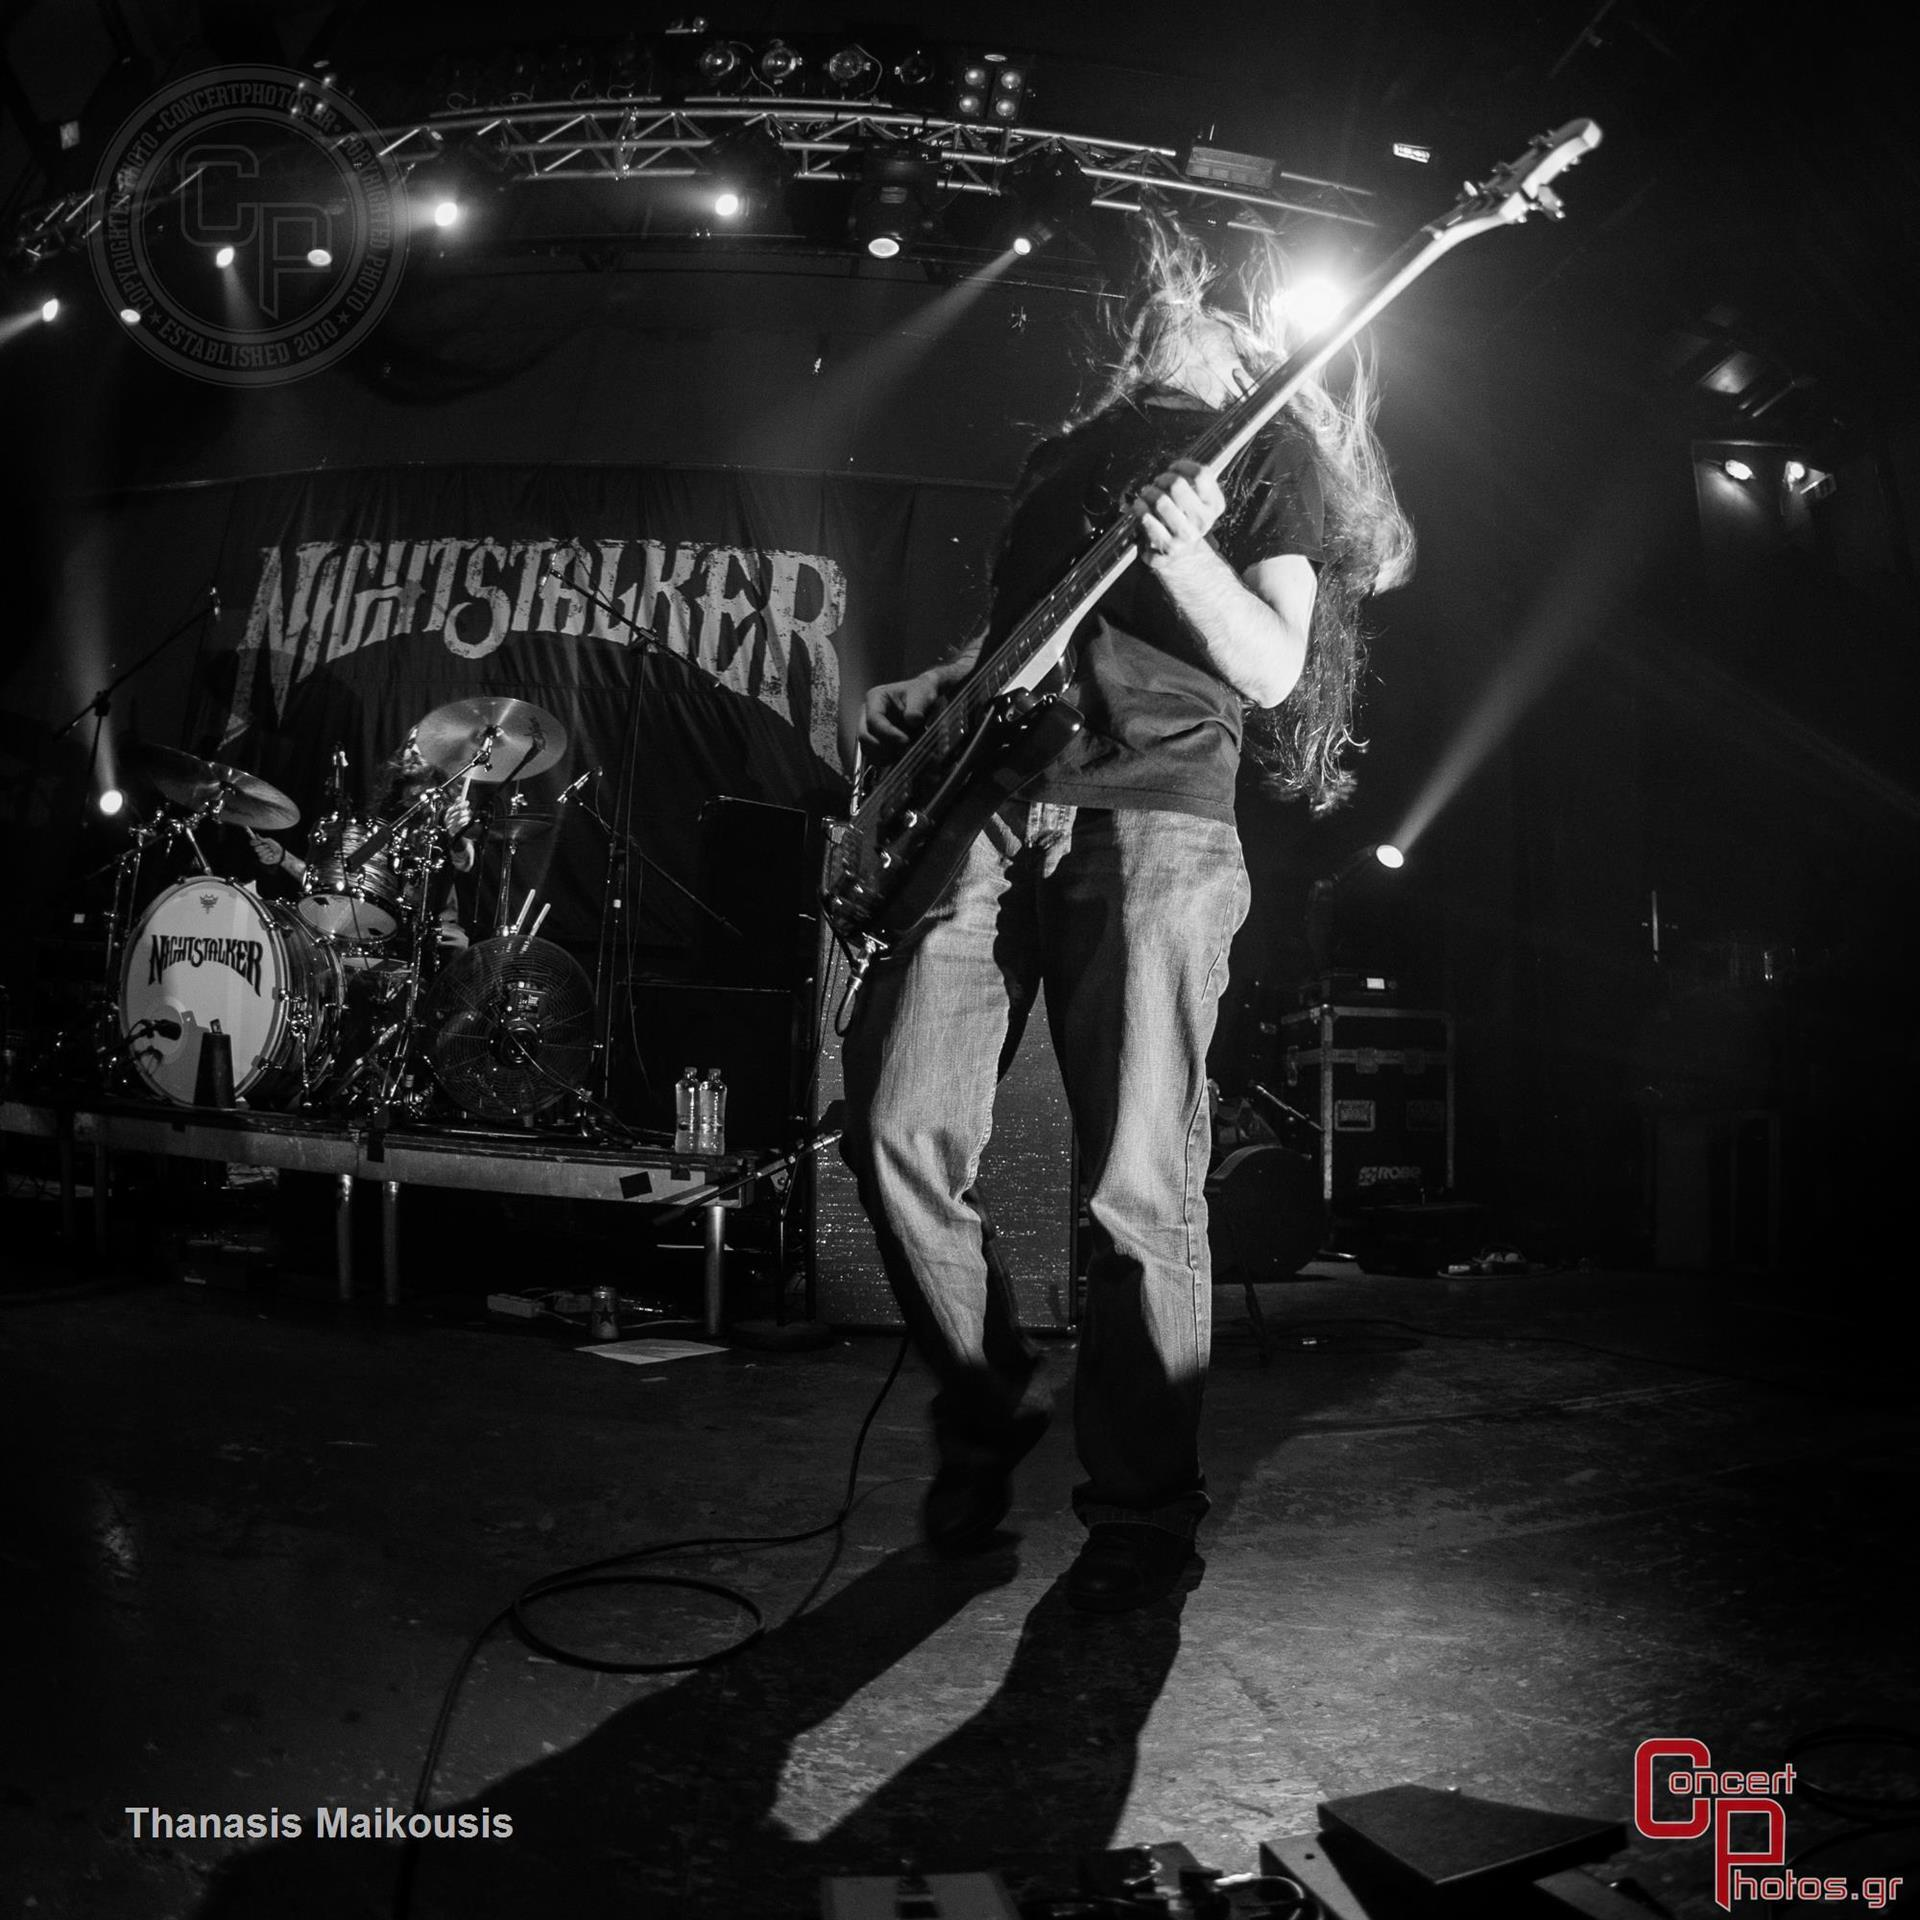 Nightstalker Three Holy Strangers-Nightstalker-Gagarin-April-2015 photographer: Thanasis Maikousis - ConcertPhotos - 20150425_2252_40